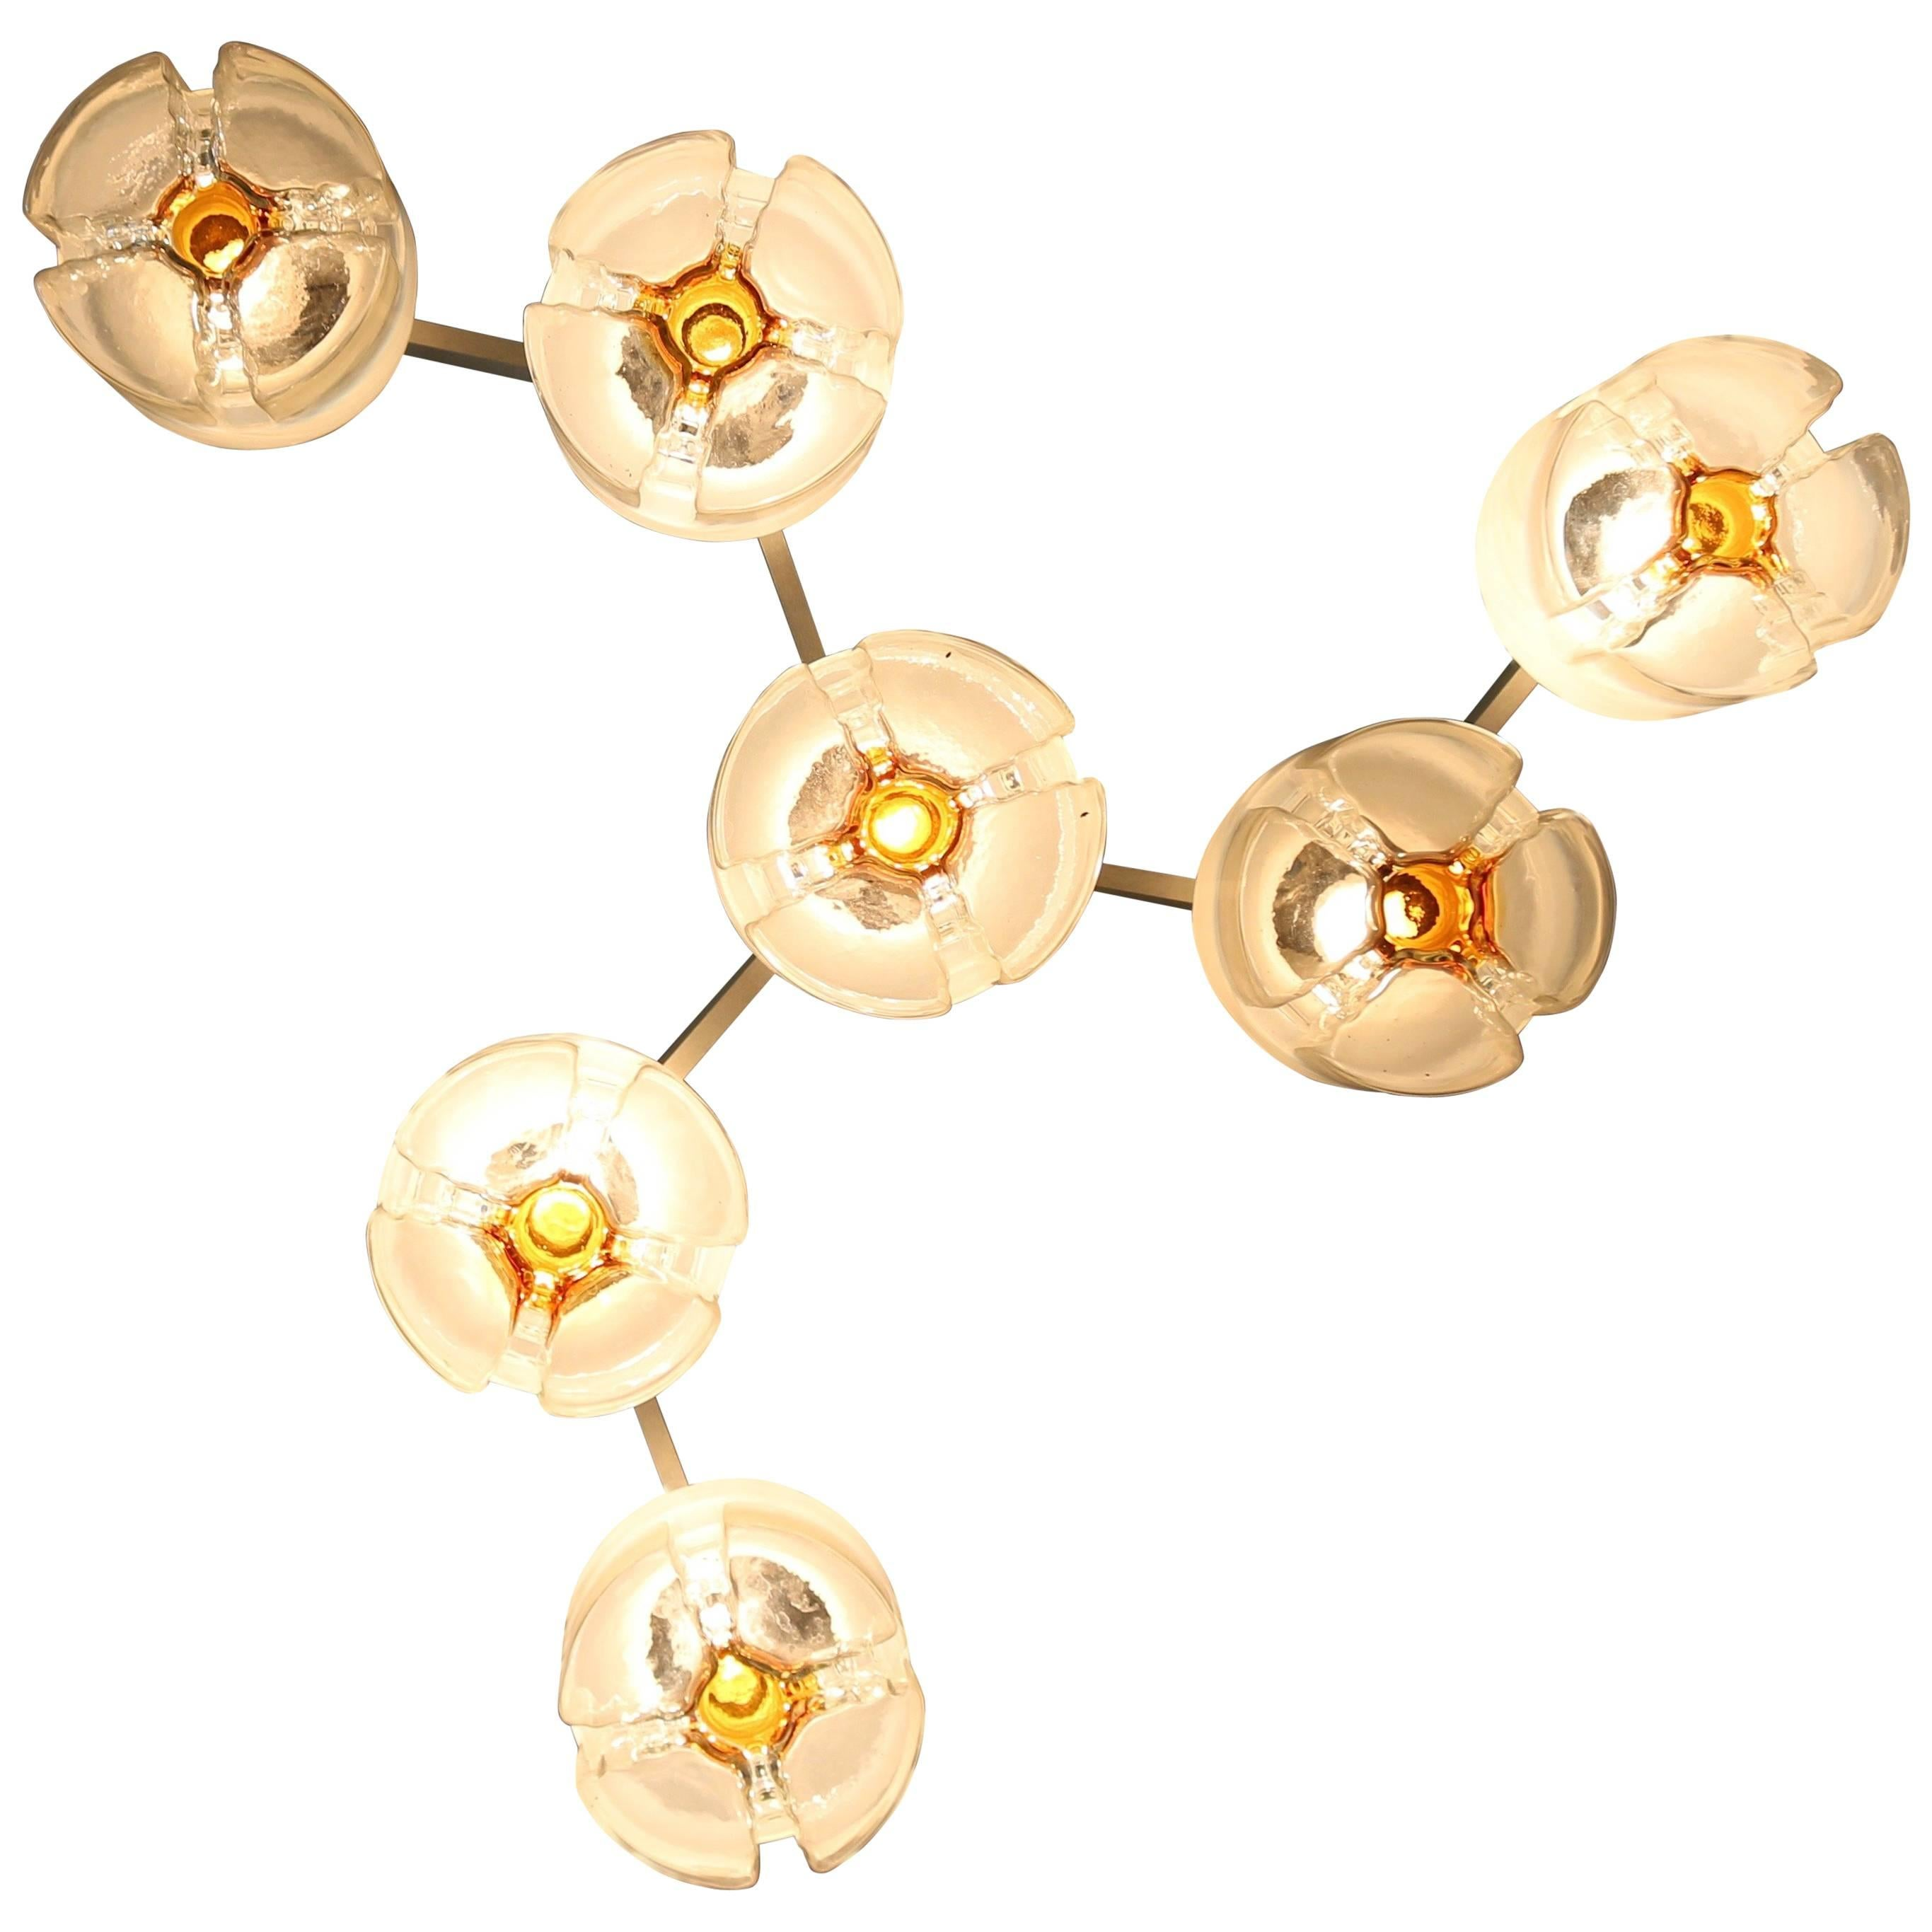 Blown Glass and Metal Chandelier Produced by Mazzega, Italy, 1970s